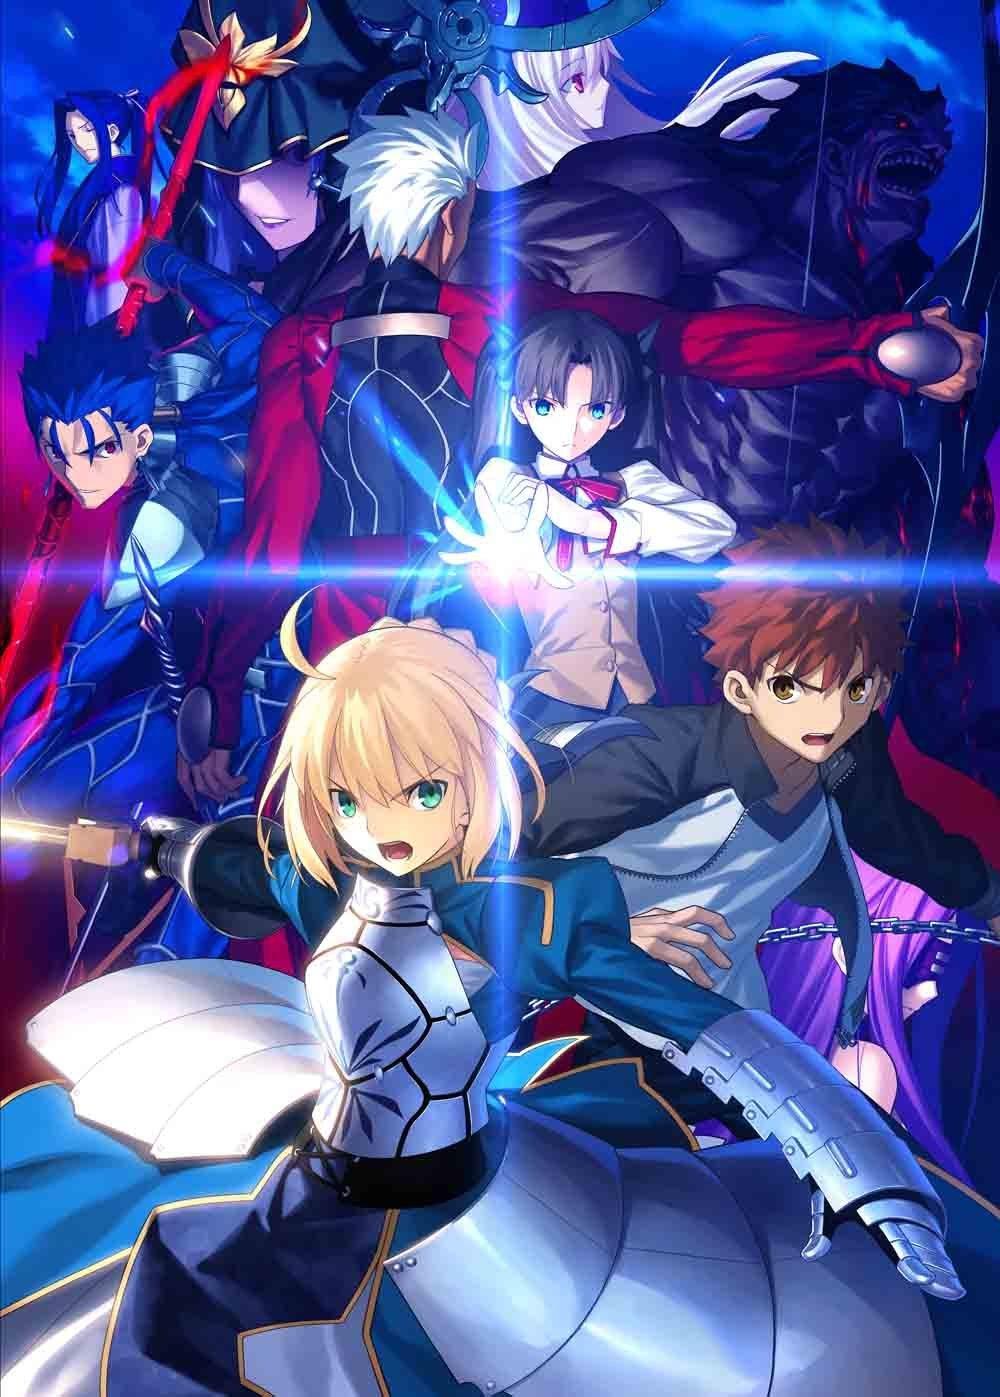 Fate:stay night [Unlimited Blade Works]